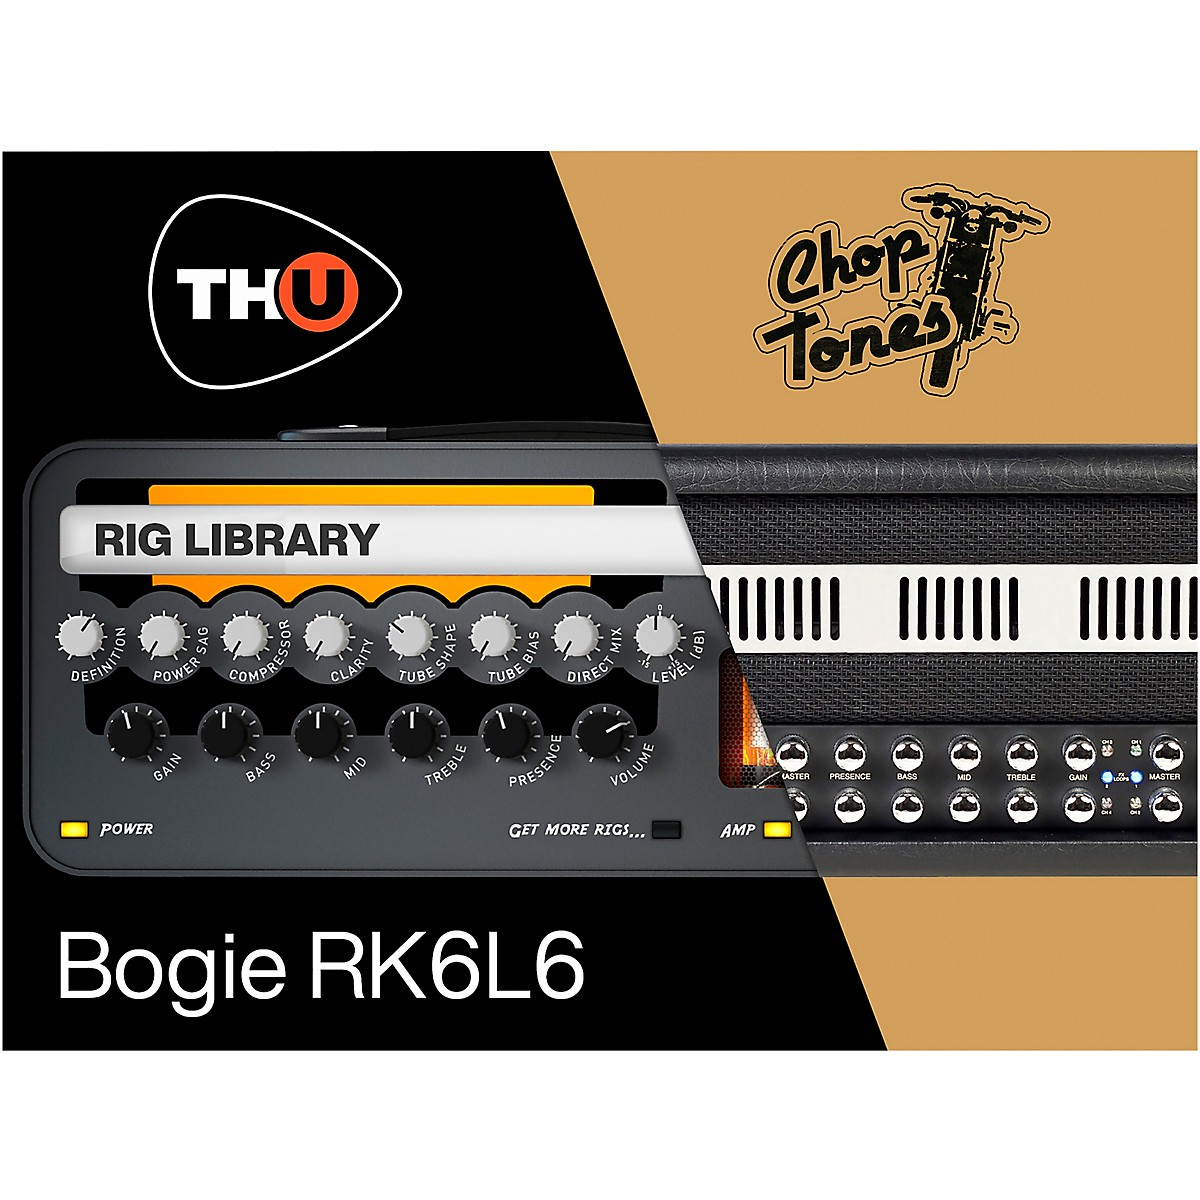 Overloud Choptones Bogie RK6L6 - TH-U Rig Library (Download)